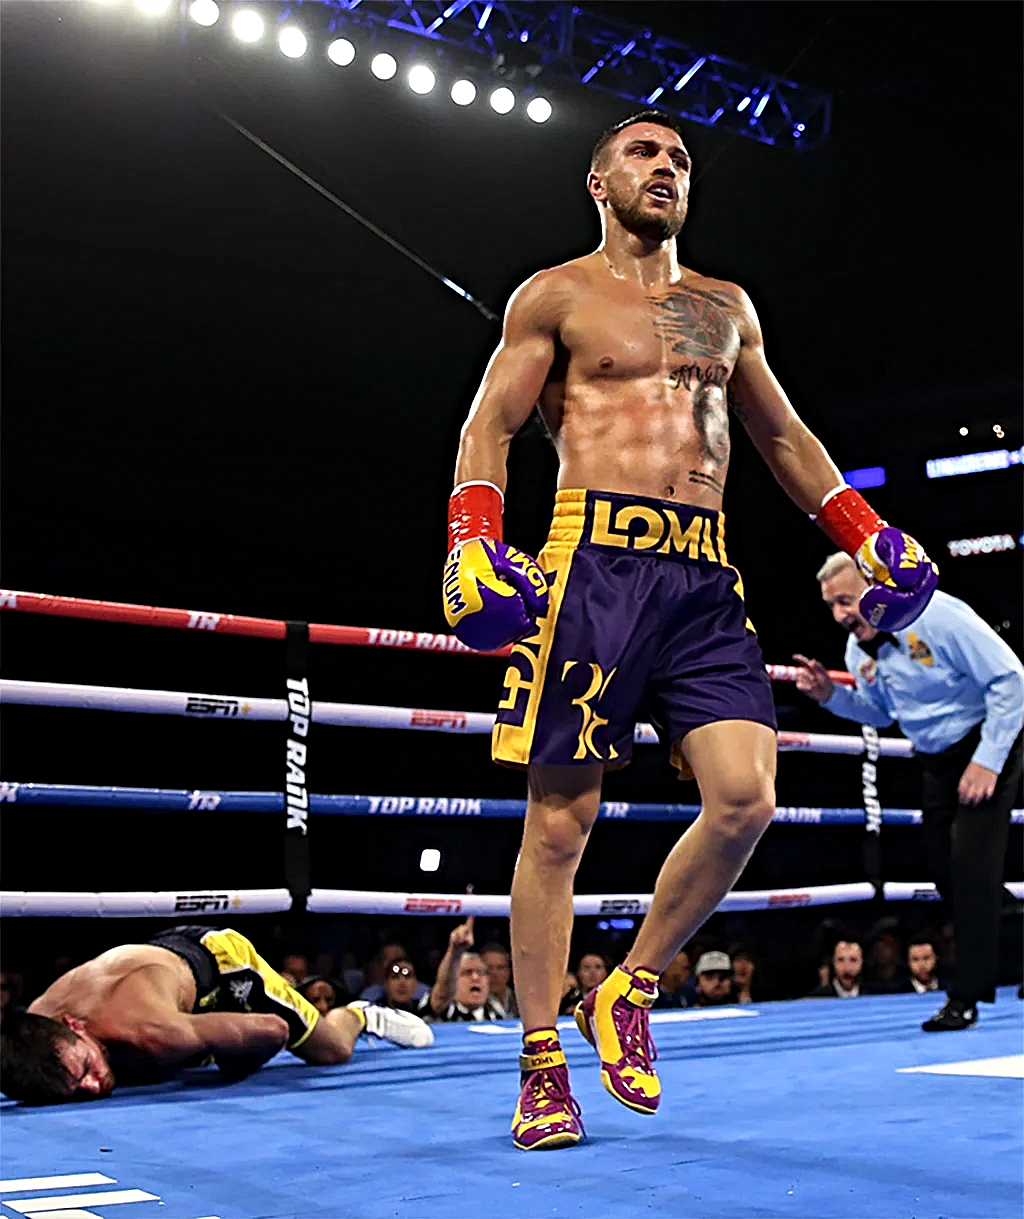 LOMACHENKO KNOCKS OUT CROLLA